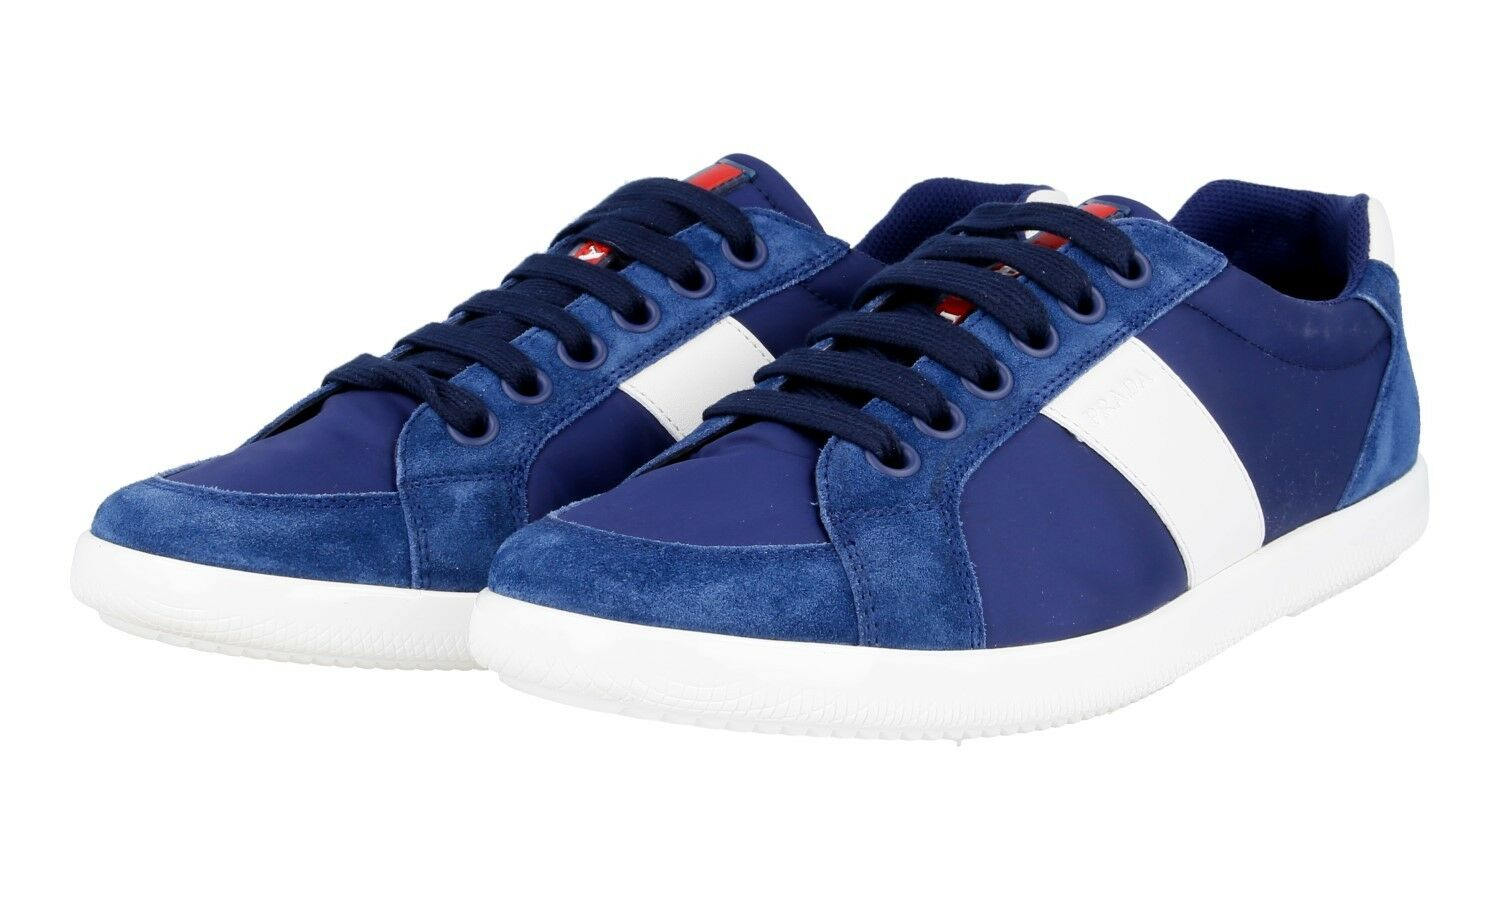 AUTHENTIC LUXURY PRADA SNEAKERS SHOES 4E2845 BLEU NEW US 13